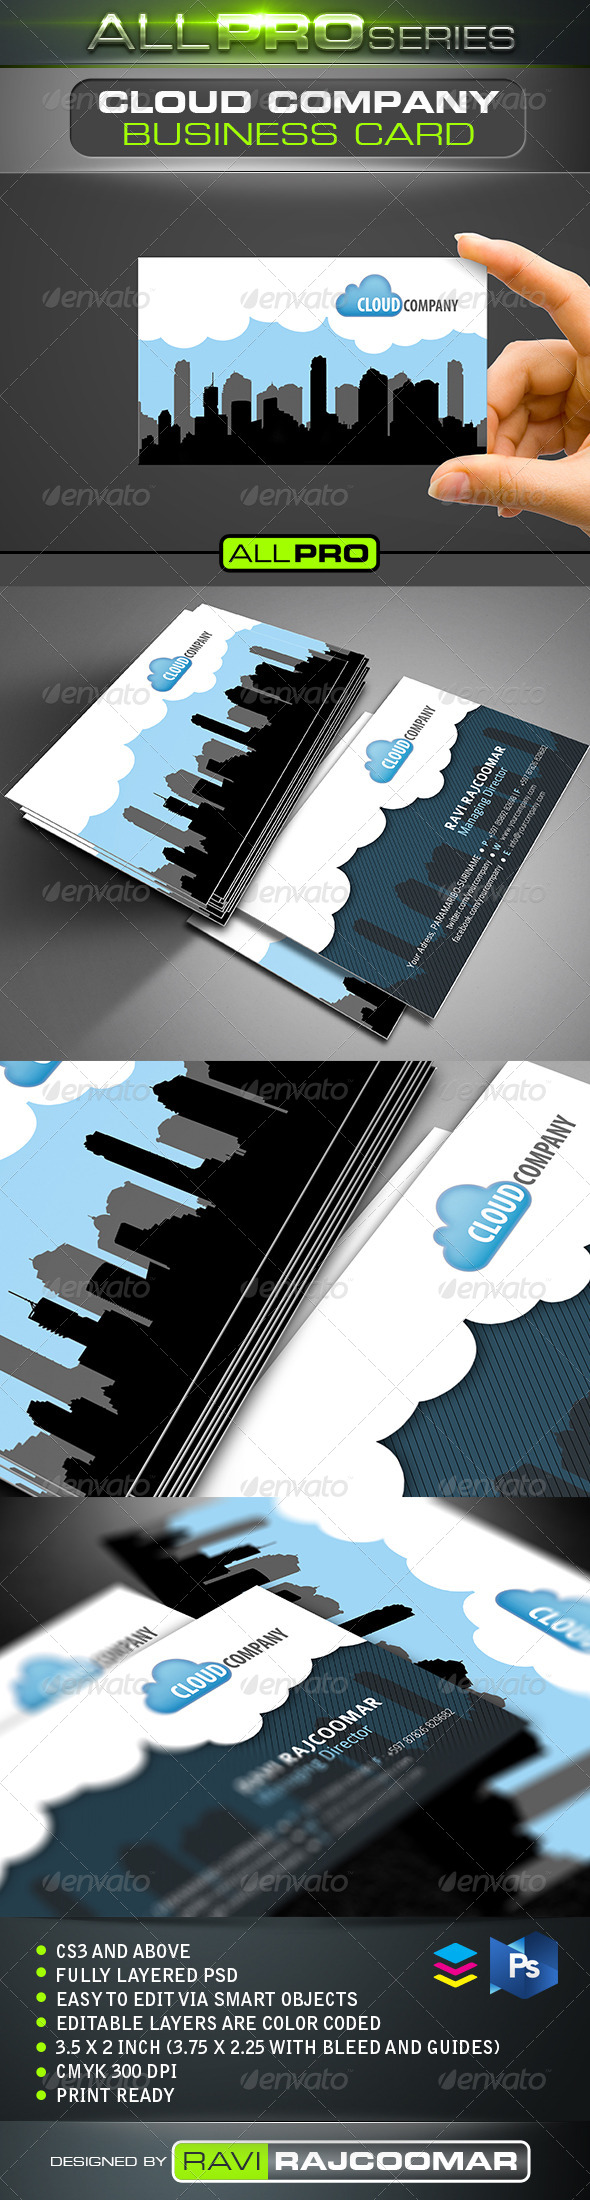 Cloud Company Business Card - Business Cards Print Templates